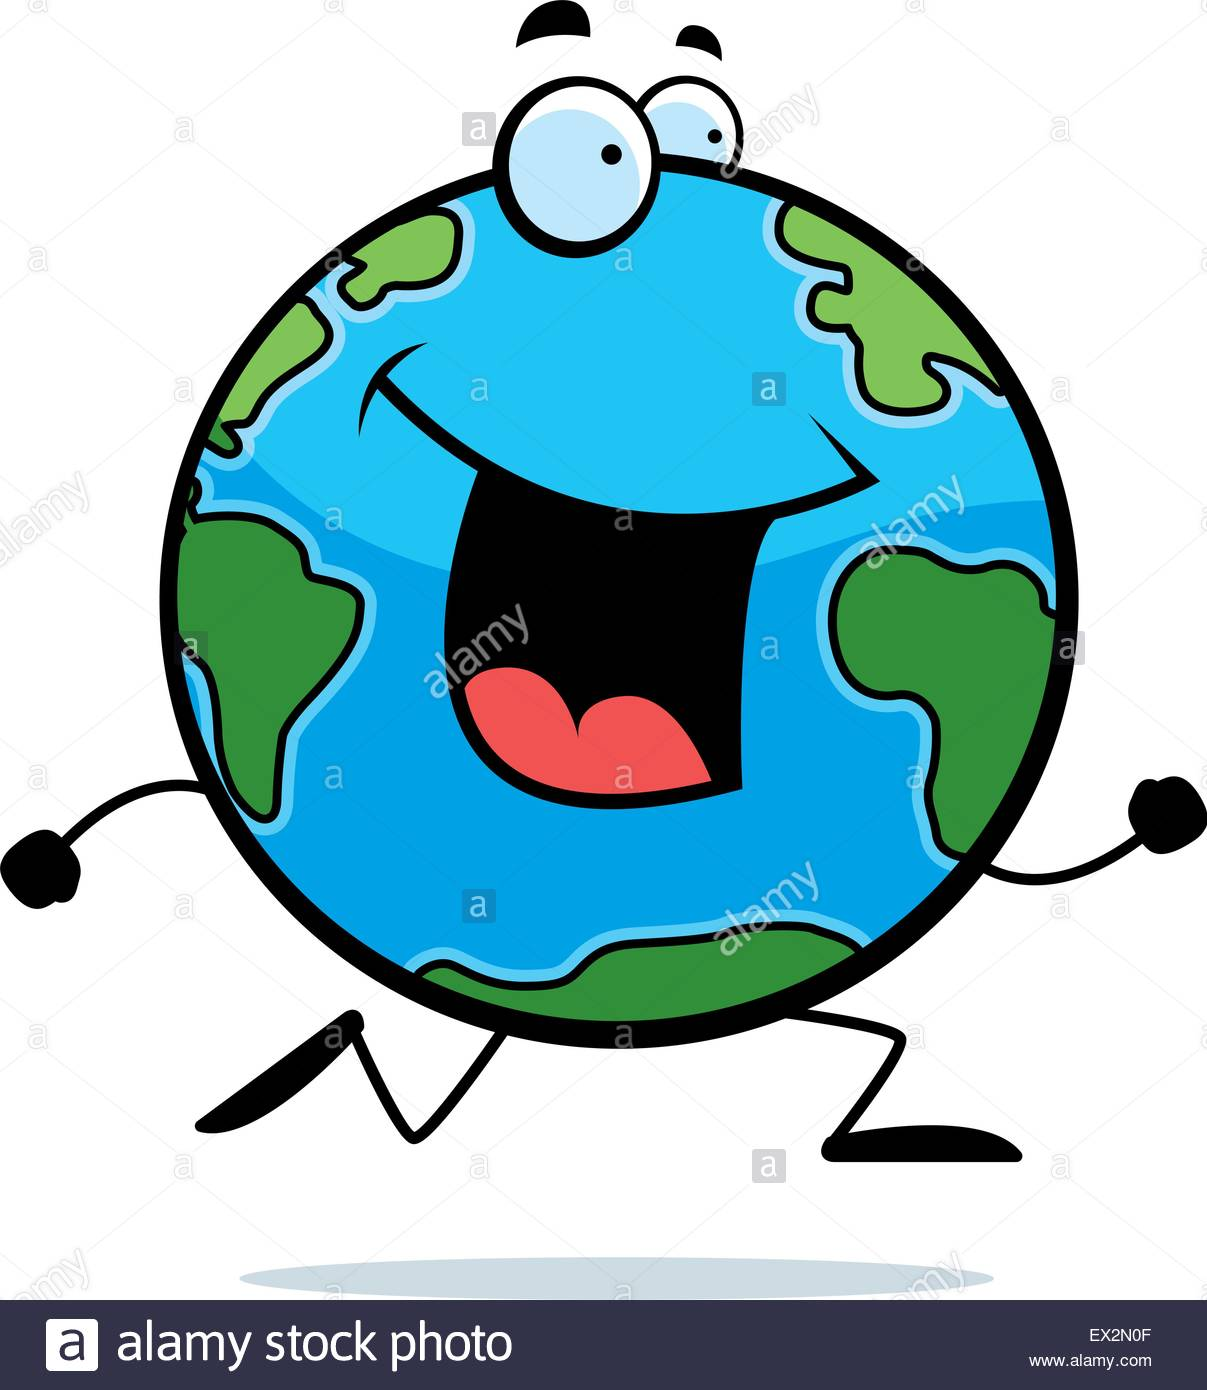 1207x1390 A Happy Cartoon Planet Earth Running And Smiling Stock Vector Art